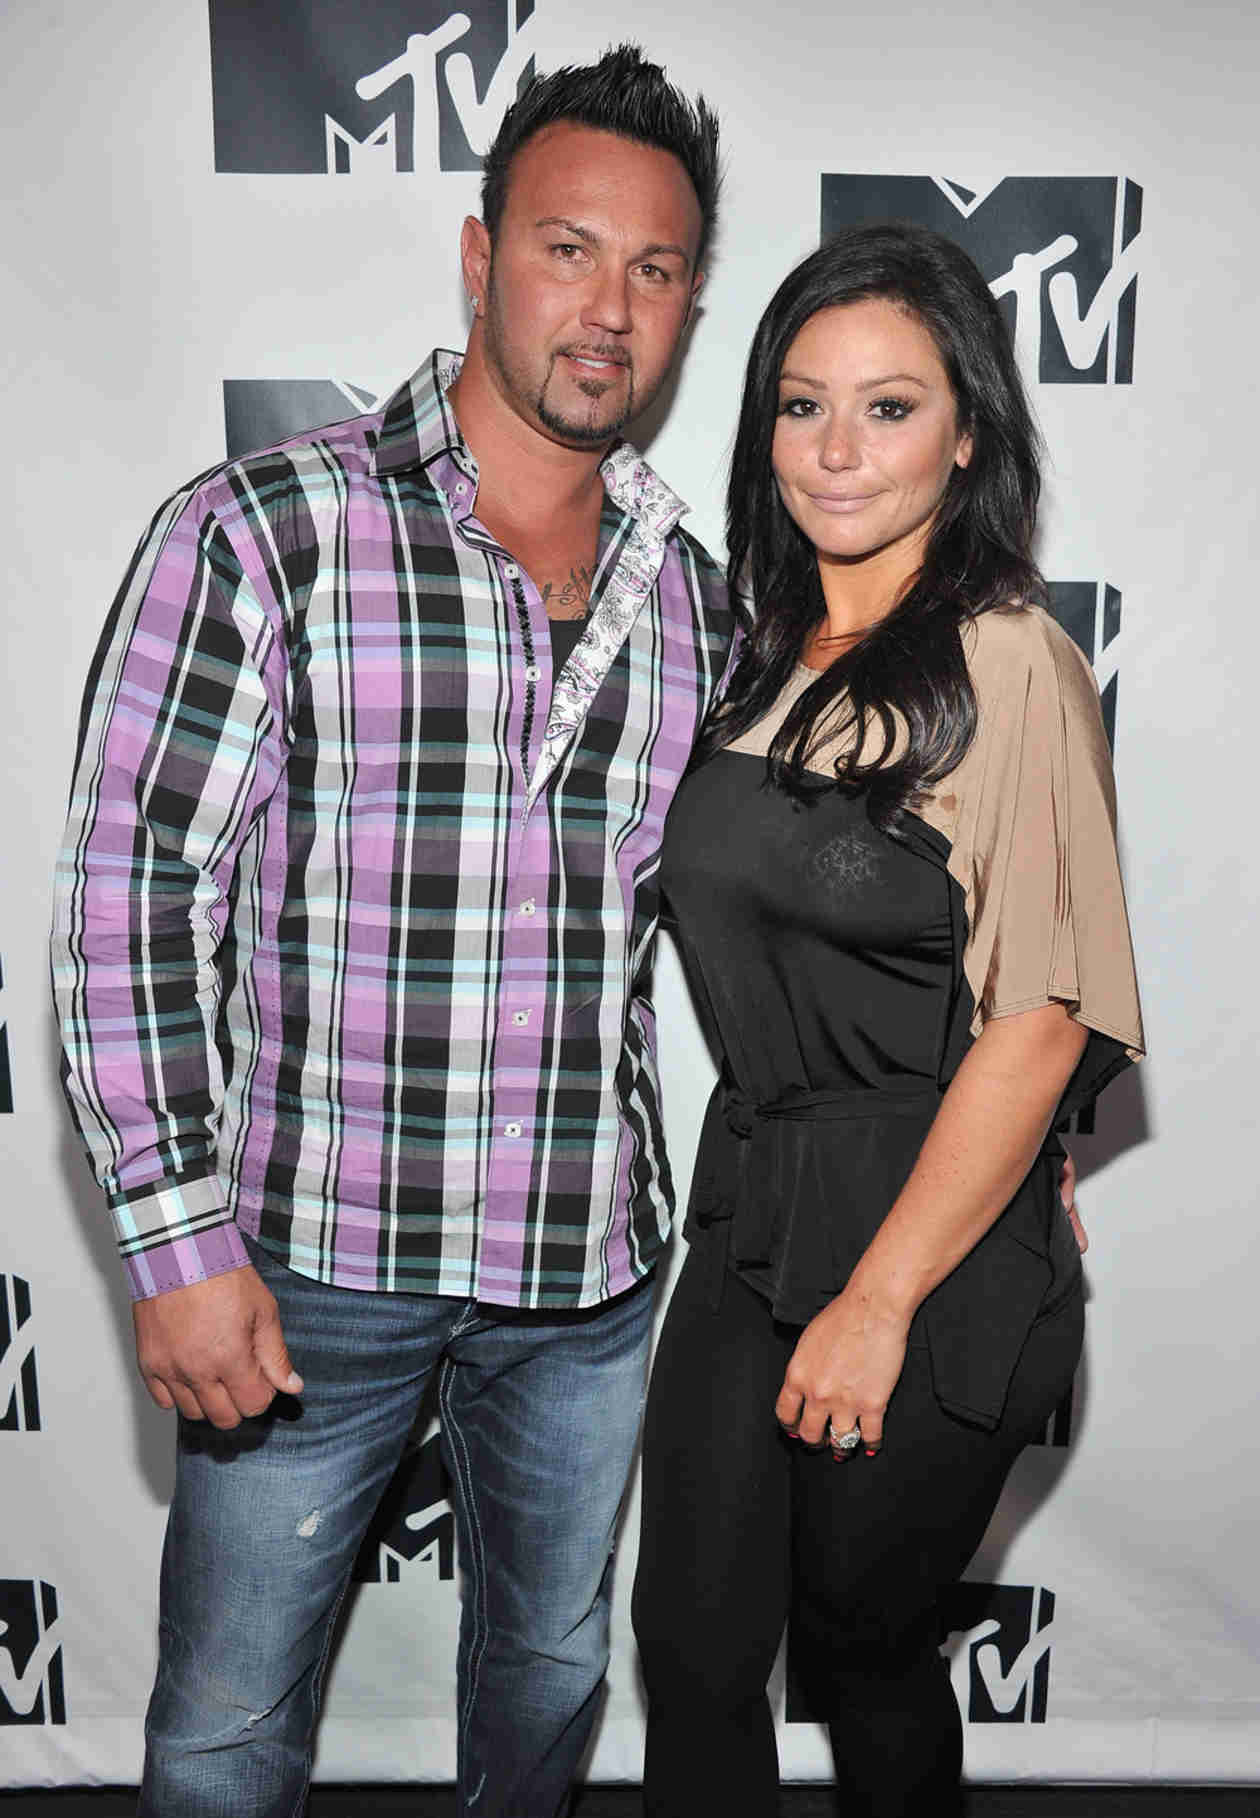 JWOWW Preps Her Daughter's Nursery — What Theme Did She Go With? (PHOTO)